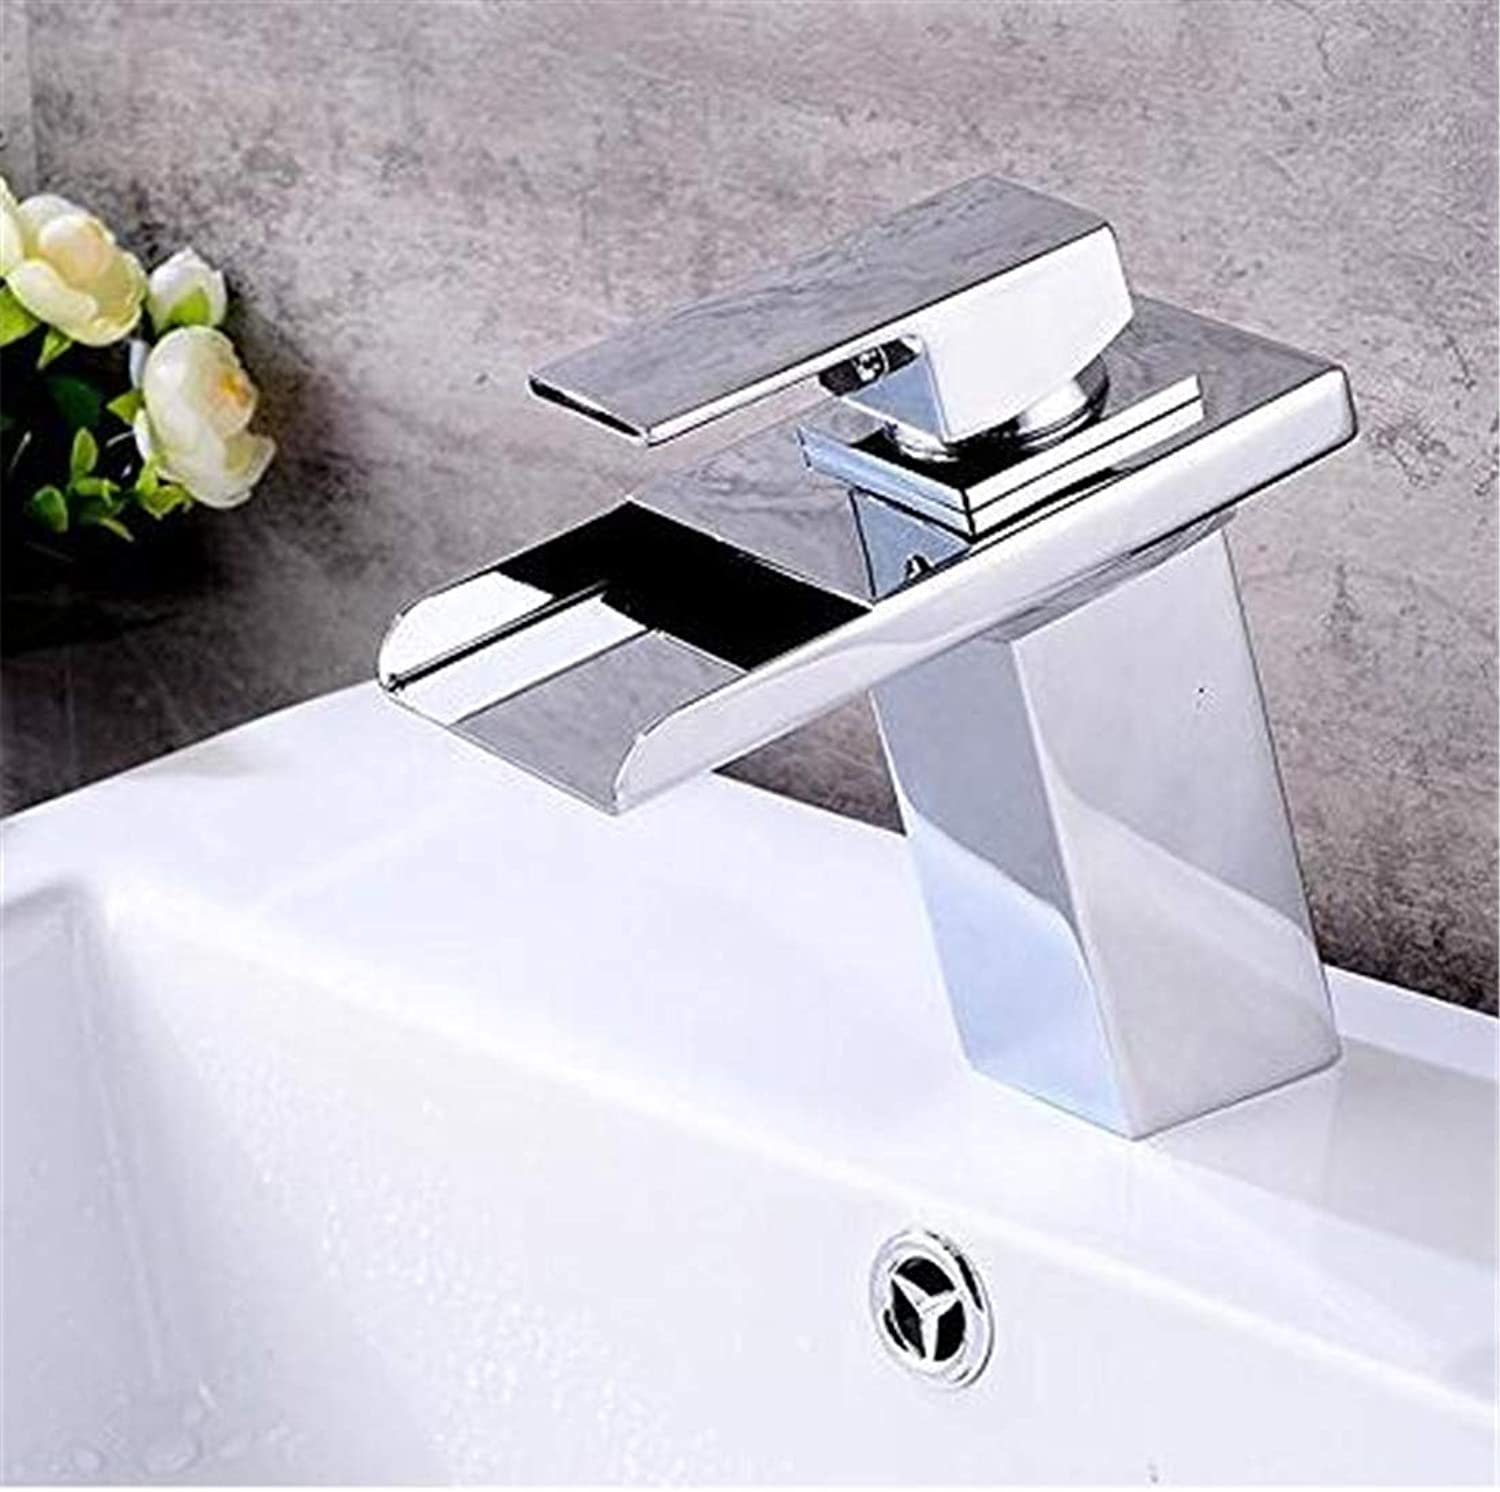 Chrome Kitchen Sink Tapled Bathroom Waterfall Spout Bathroom Sink Faucet Single Handle Mixer Tap Chrome Finish